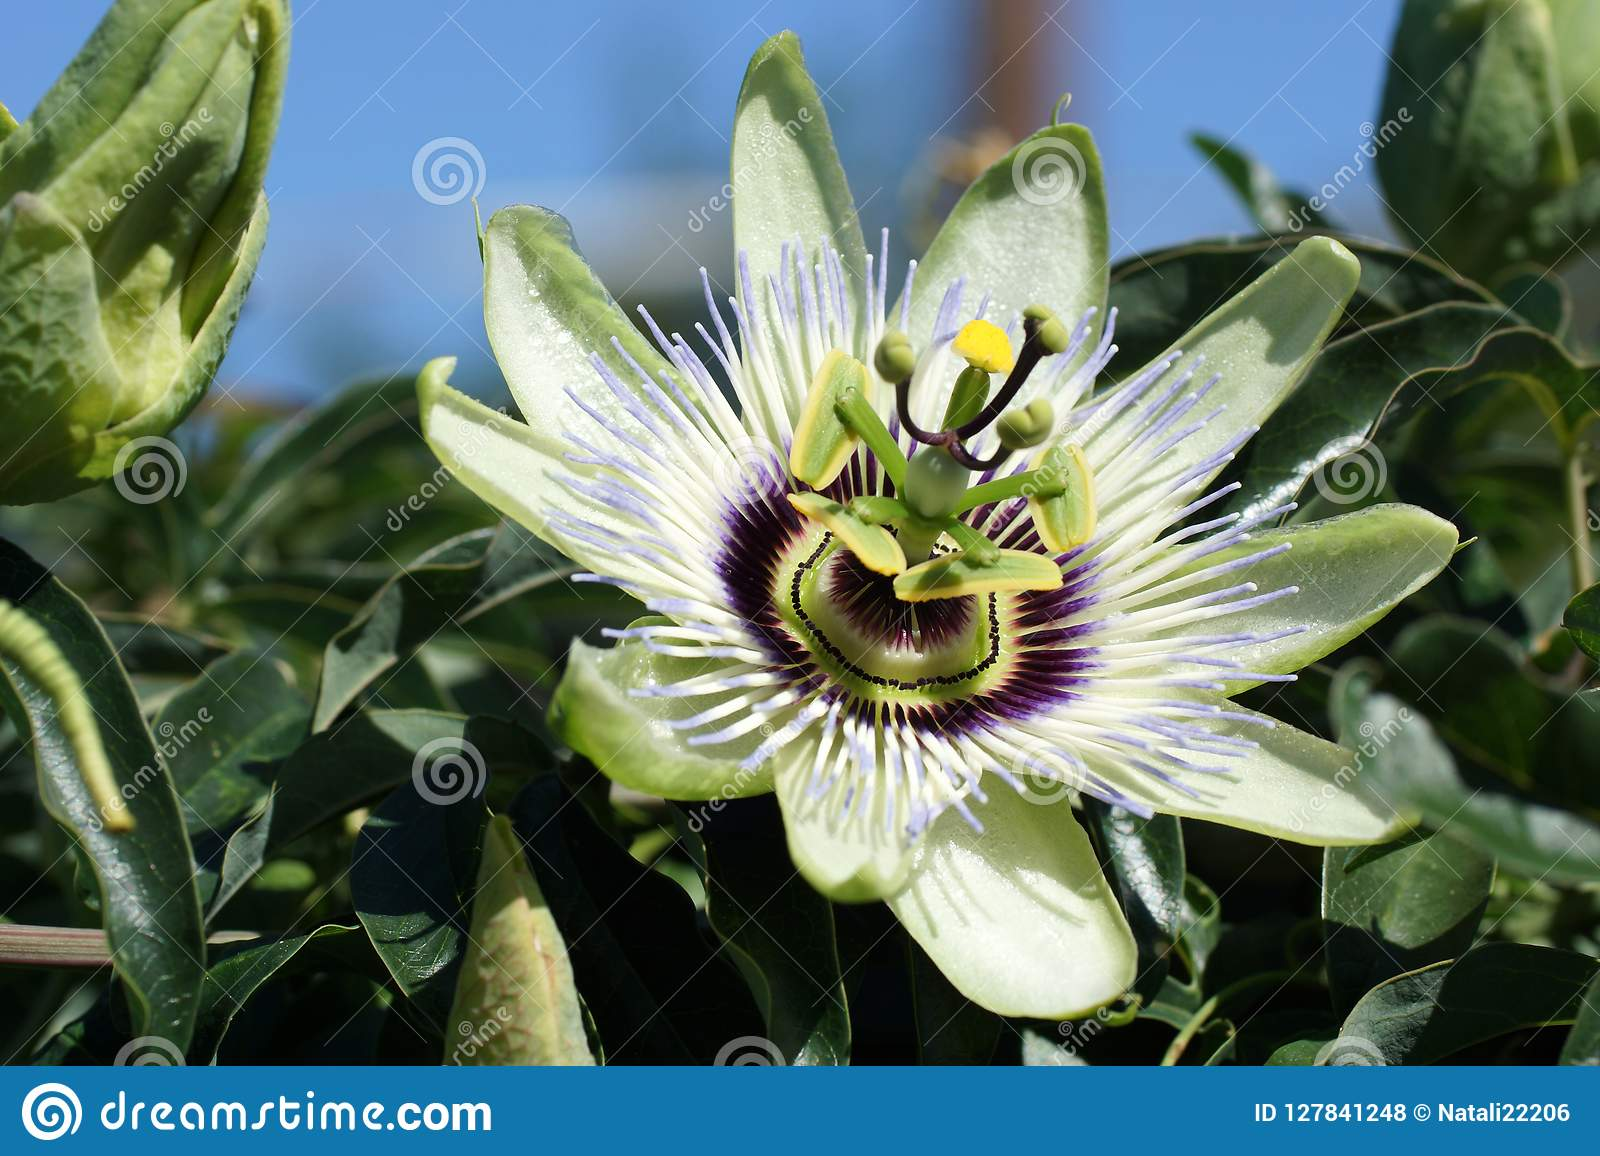 Closeup of passiflora flower in the open air.